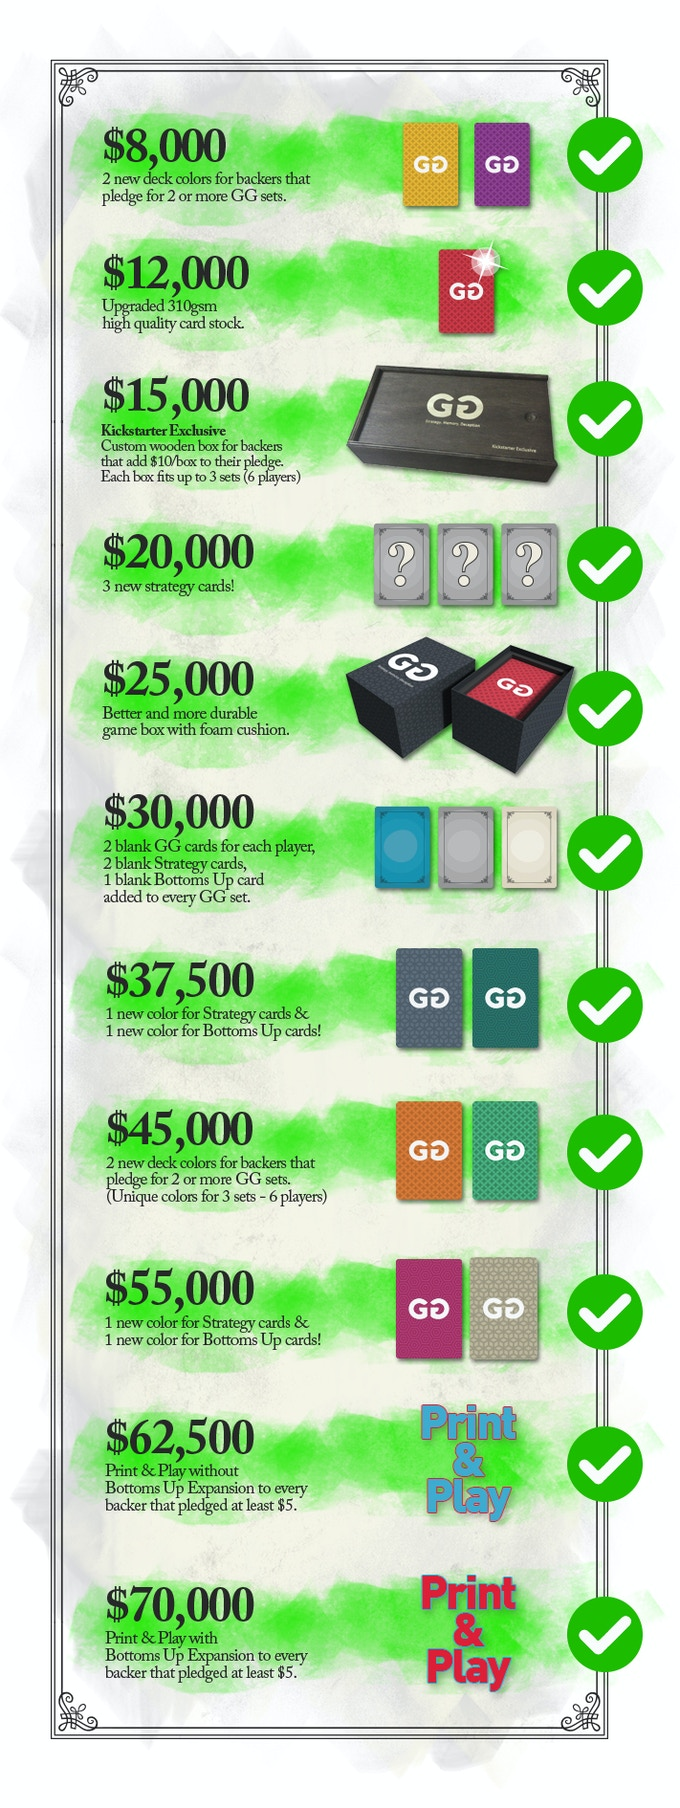 We've unlocked all the Stretch Goals!